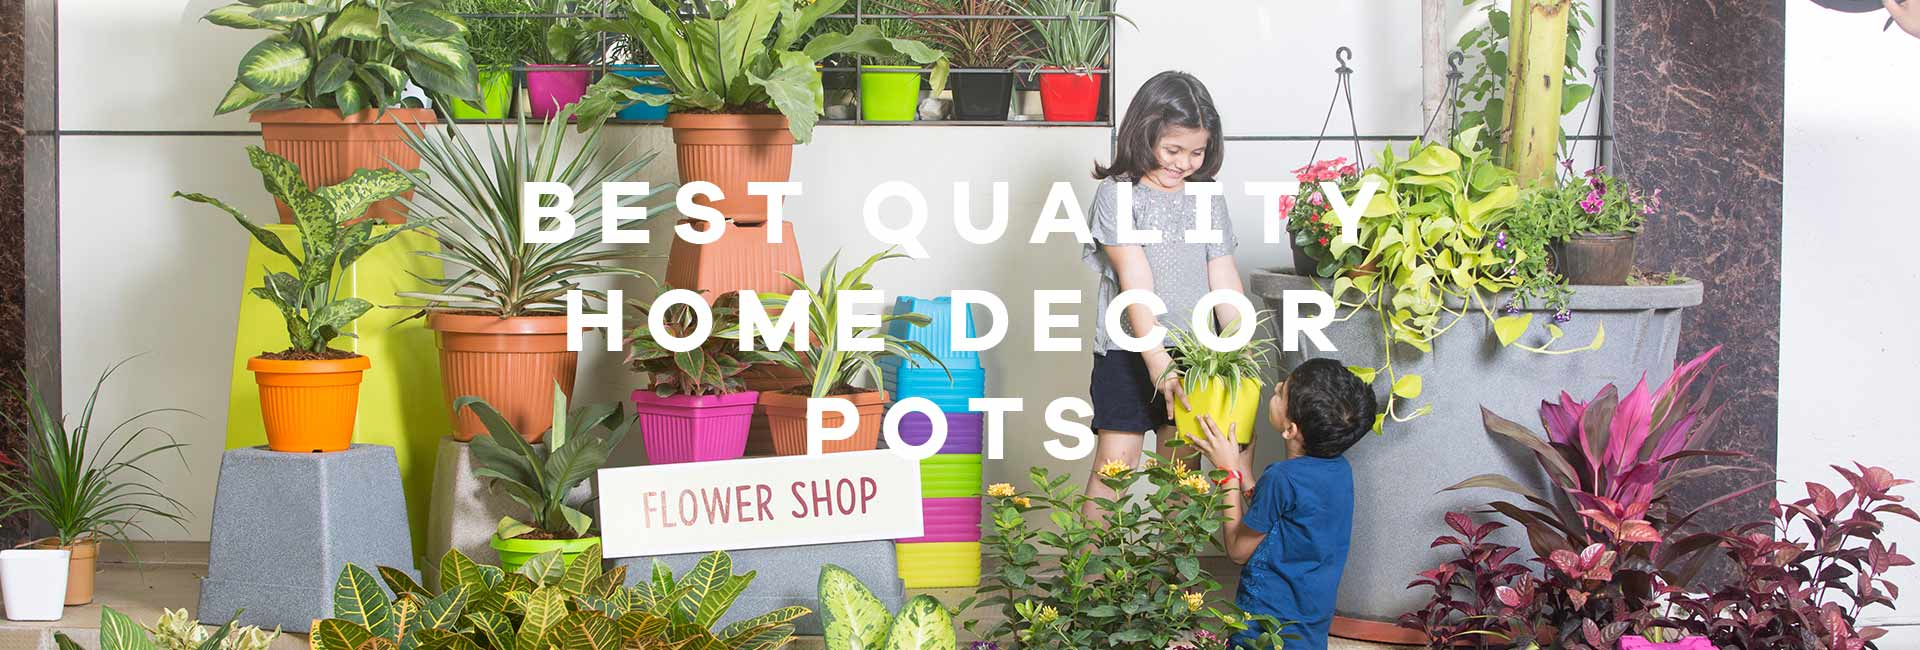 Indoor Pots, Outdoor Pots, Hanging Pots, Garden Pots, Home Planters, premium quality, Harshdeep, India, home décor, flower, plastic, home décor, terrace, office, living room, eco-friendly, recyclable, multicolored, round, square, rectangle, LED, FRP, rotomolded, house, residential, commercial, hotel, durable planters, small, tall, nursery, wooden finish pots